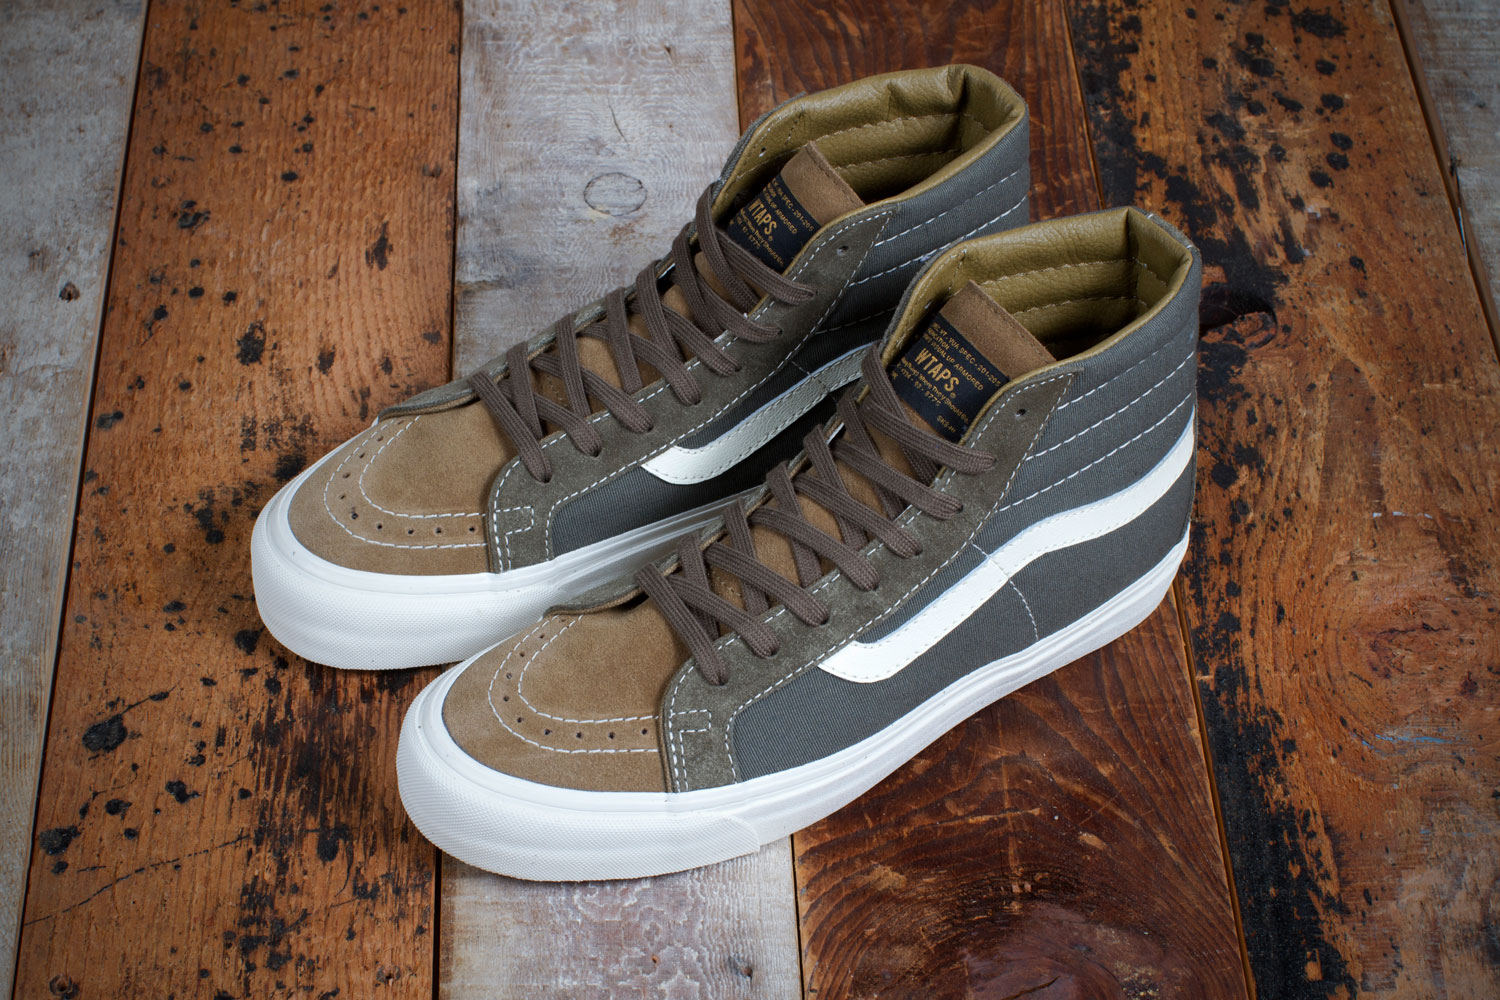 a251c9df12 WTAPS x Vans Vault Fall 2013 Collection